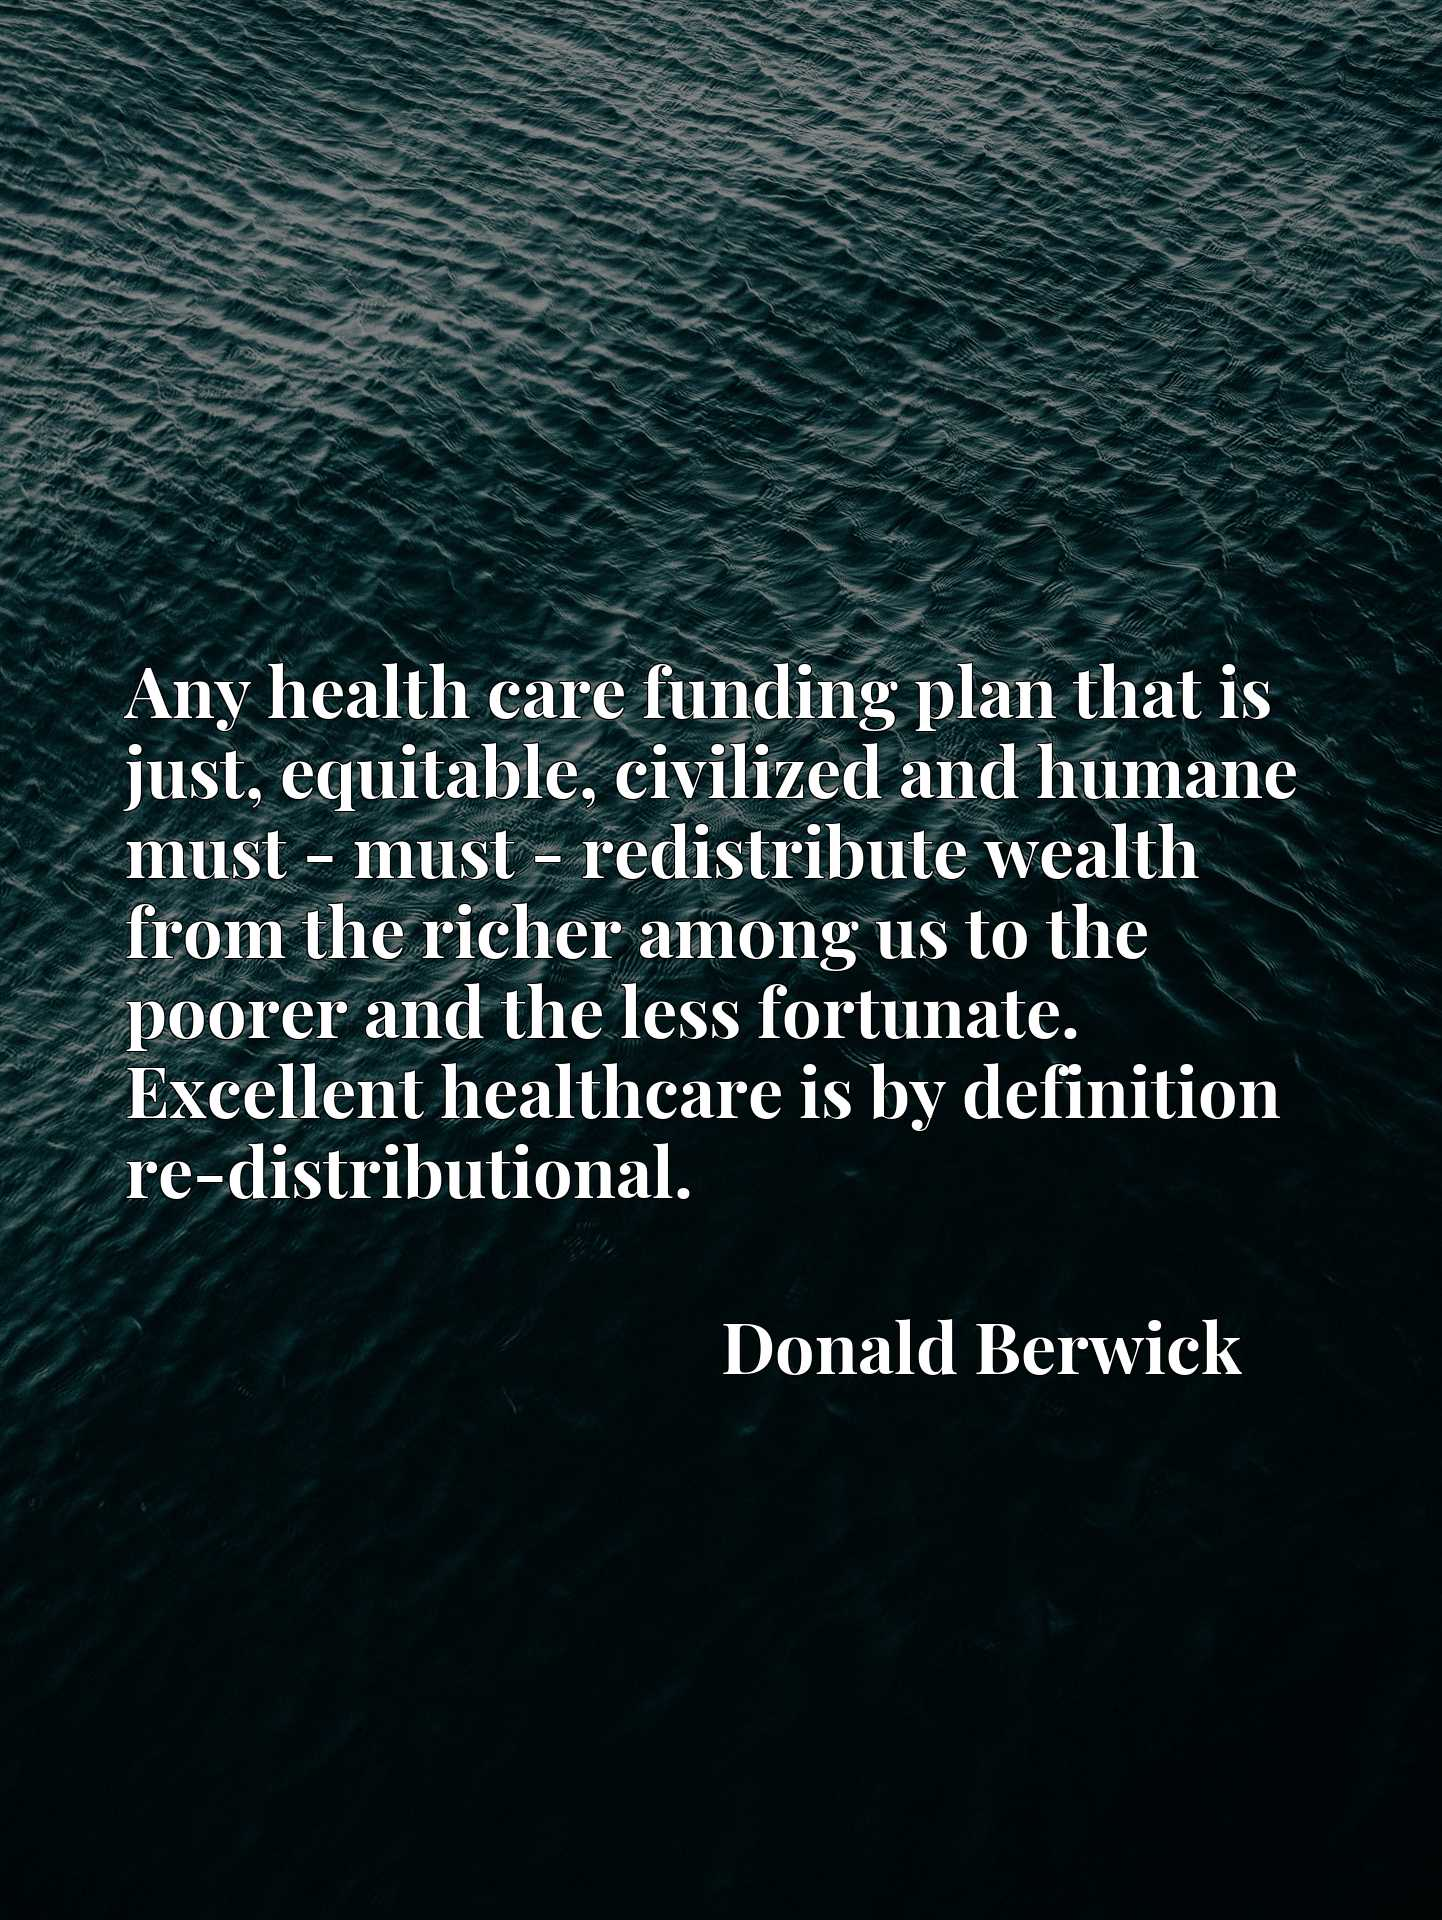 Any health care funding plan that is just, equitable, civilized and humane must - must - redistribute wealth from the richer among us to the poorer and the less fortunate. Excellent healthcare is by definition re-distributional.